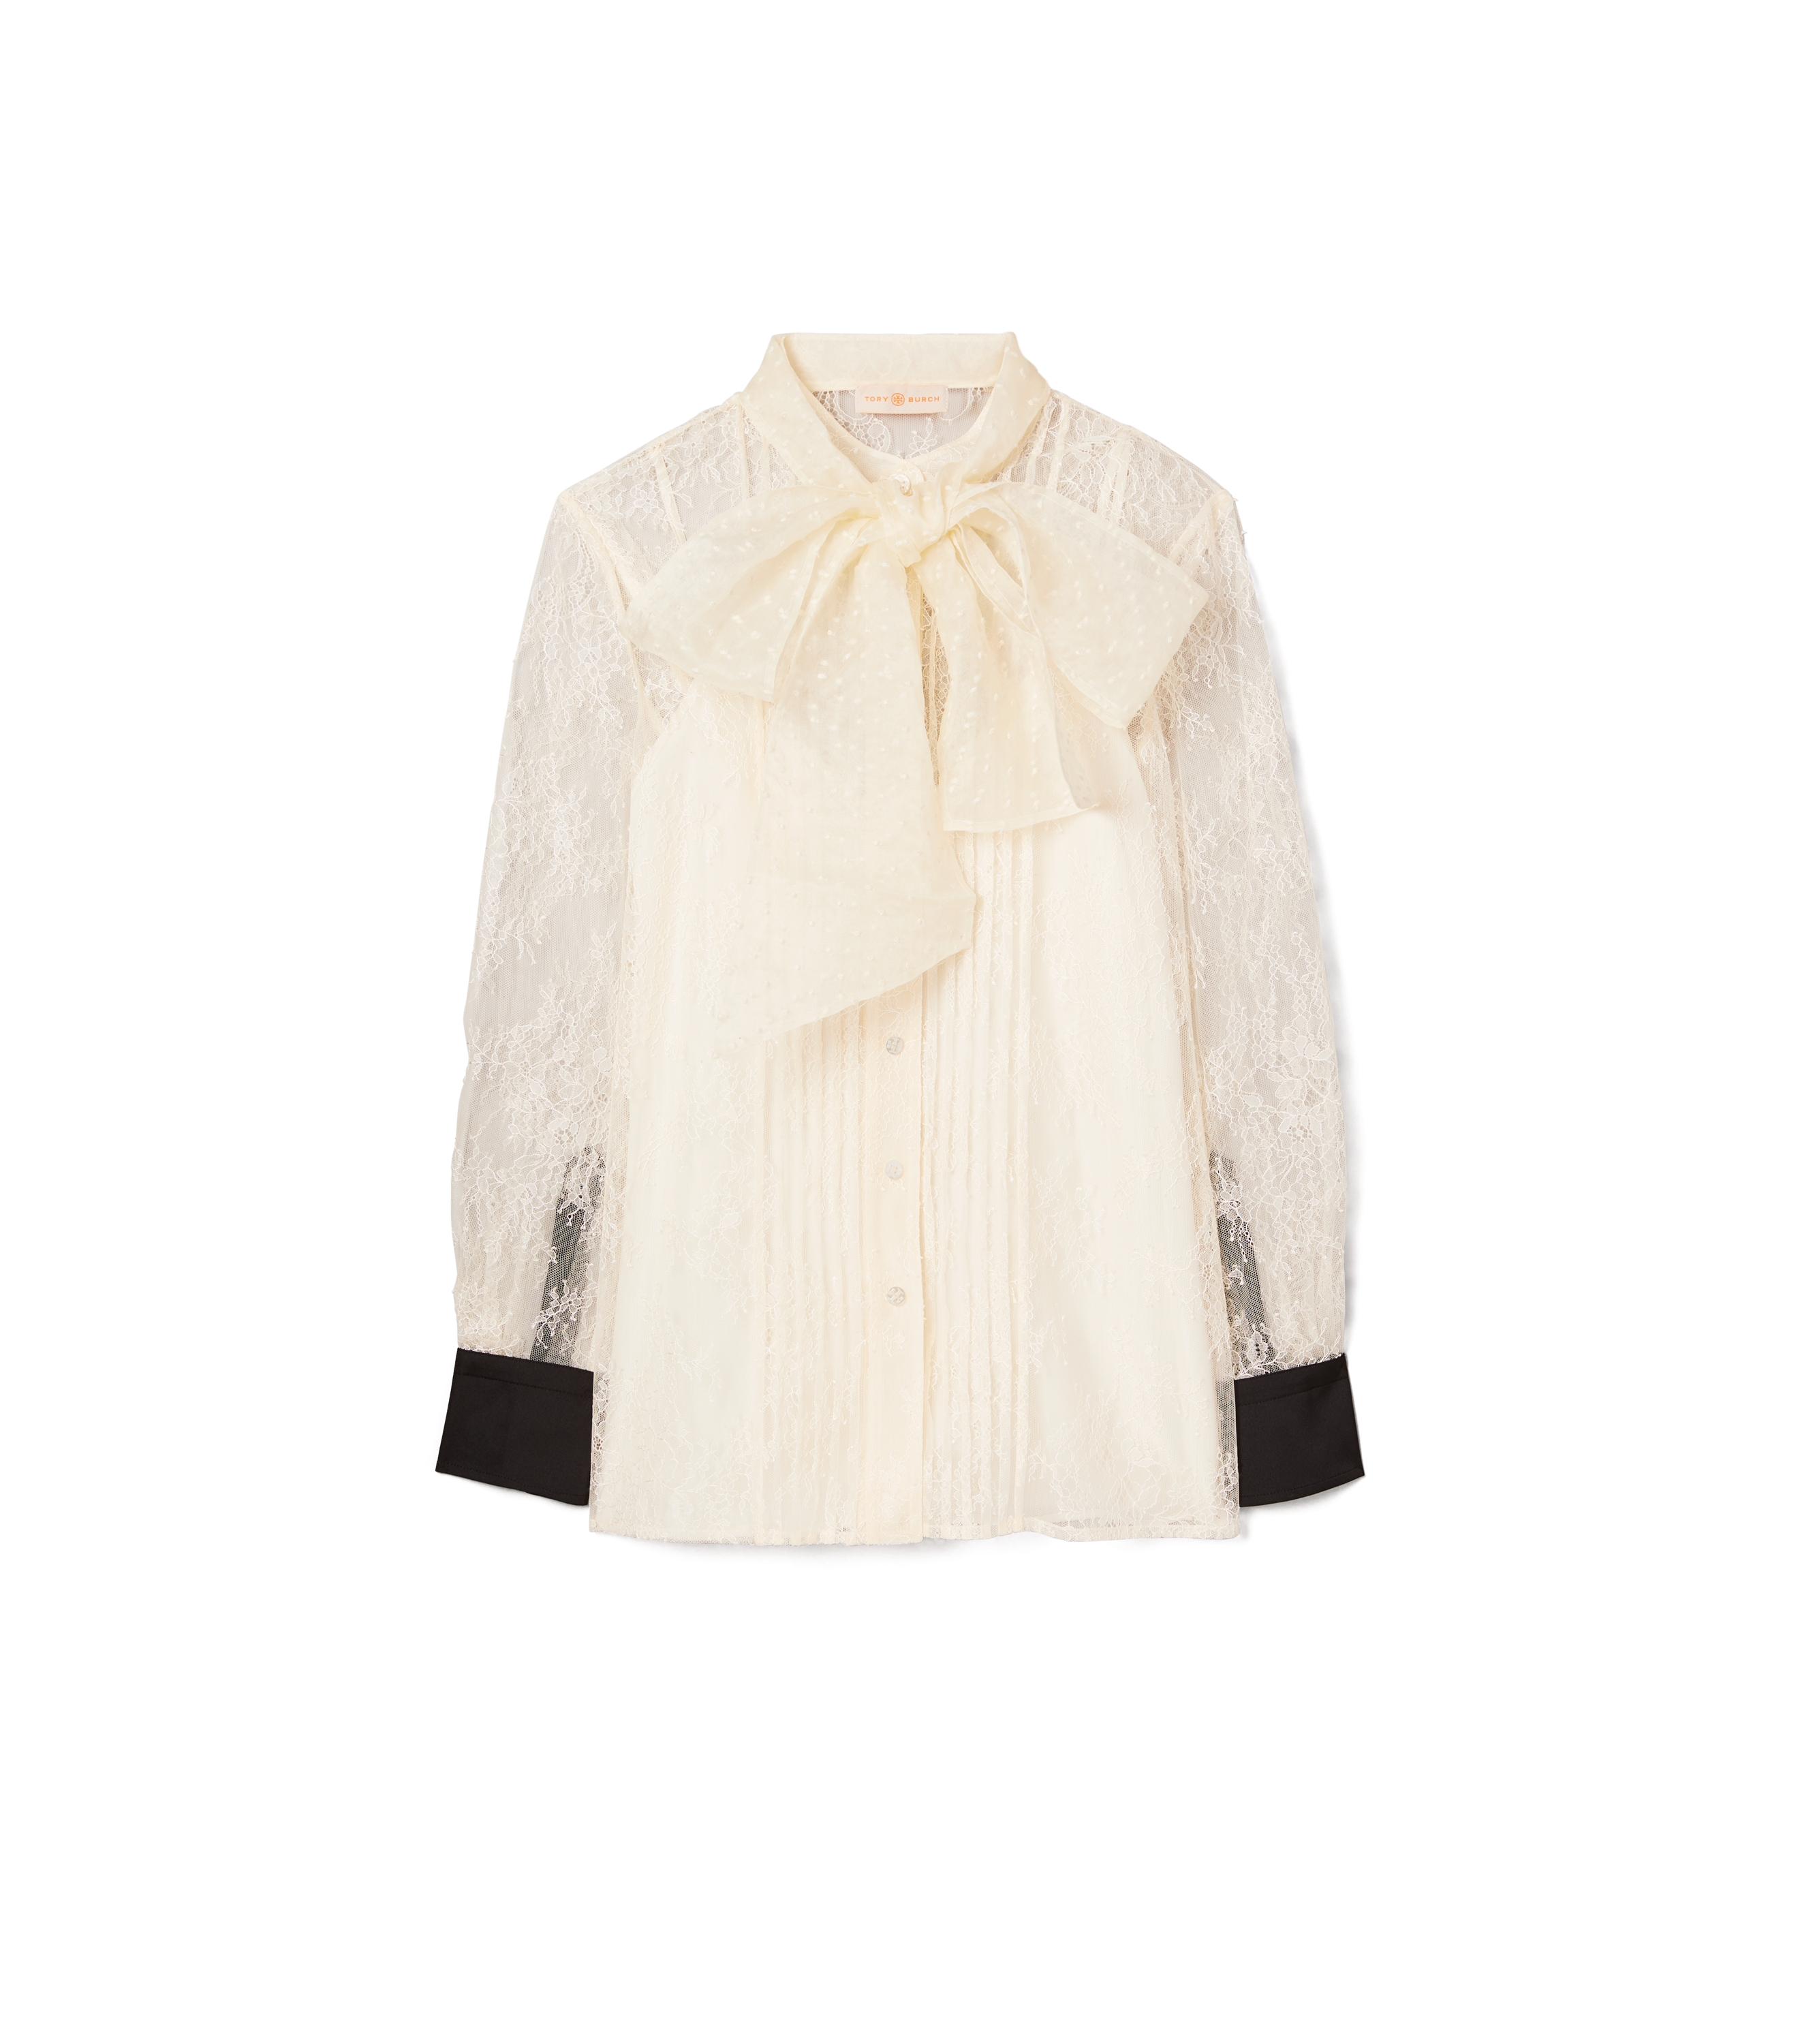 Tory Burch Chantilly Lace Bow Blouse